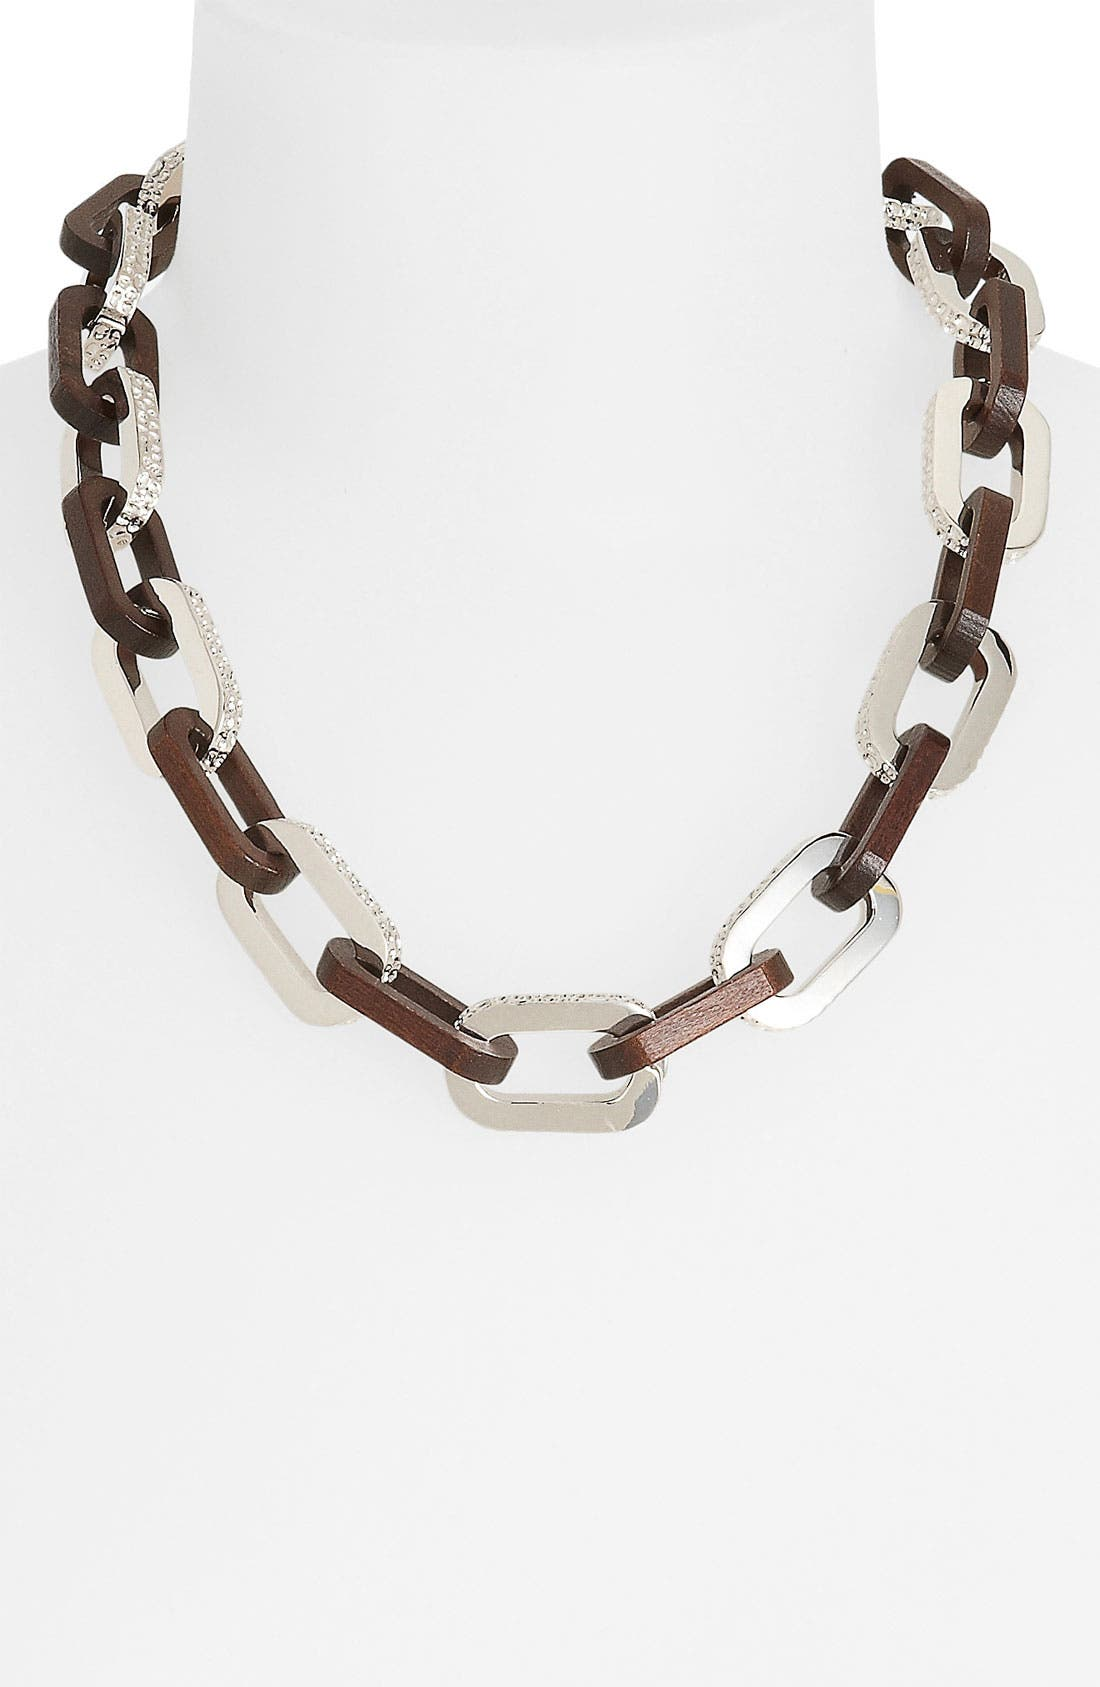 Alternate Image 1 Selected - MARC BY MARC JACOBS 'Articulated Zebra' Link Necklace